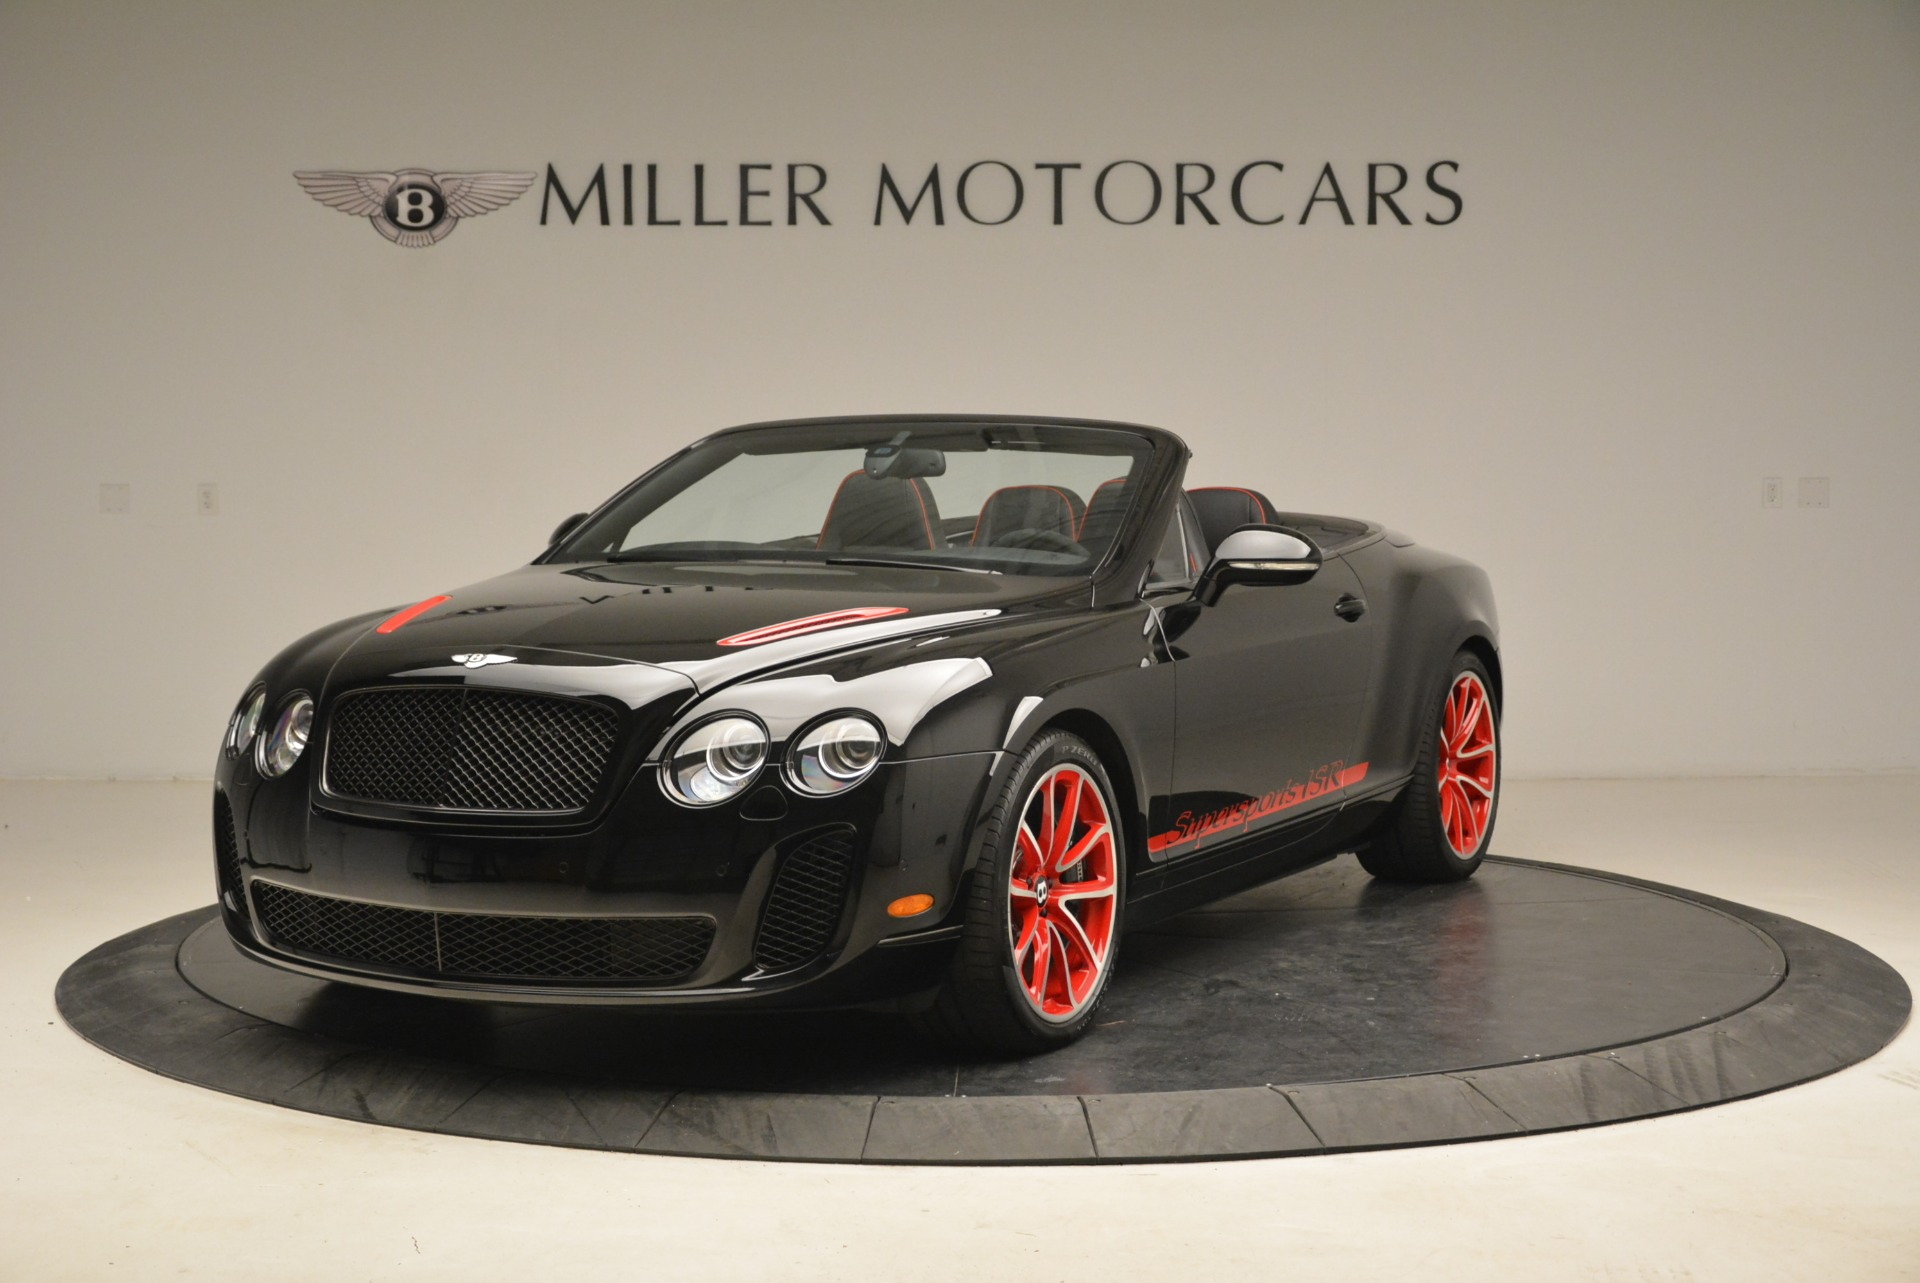 Used 2013 Bentley Continental GT Supersports Convertible ISR for sale Sold at Rolls-Royce Motor Cars Greenwich in Greenwich CT 06830 1